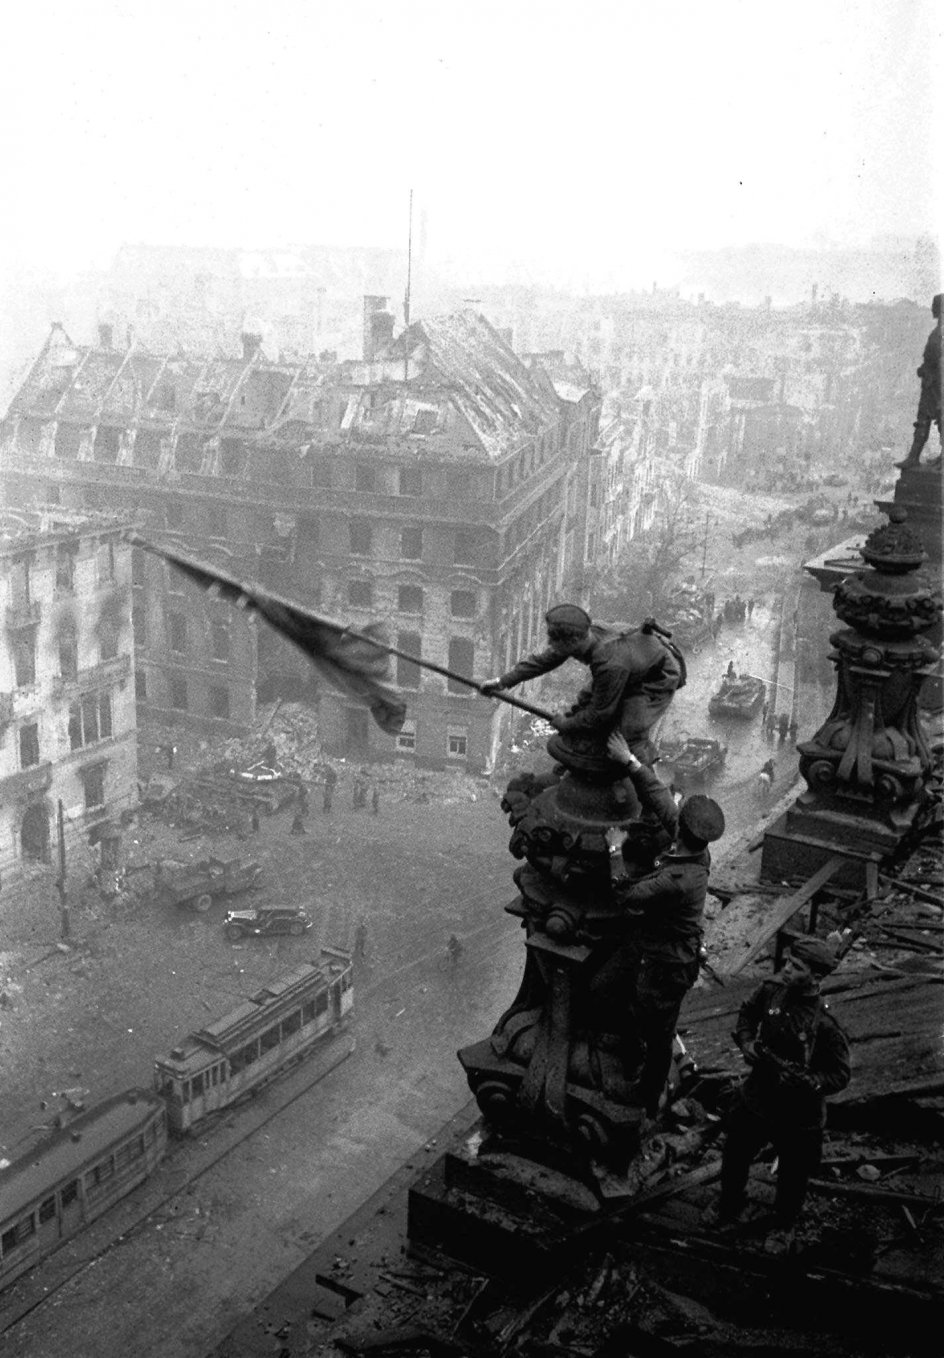 FILE- In this May 2, 1945 file photo, Soviet soldiers hoist the red flag over the Reichstag after the fall of Berlin, which became one of the iconic images of World War II taken by renowned photographer Yevgeni Khaldei. The daughter of the photographer Yevgeni Khaldei who took the iconic WWII image of Red Army soldiers atop the Reichstag, Anna Khaldei has regained possession of his original negatives after a 15-year court battle and is now hoping to mount an exhibition of her father's work, recording history through his lens. (Yevgeni Khaldei/ITAR-TASS file photo via AP)